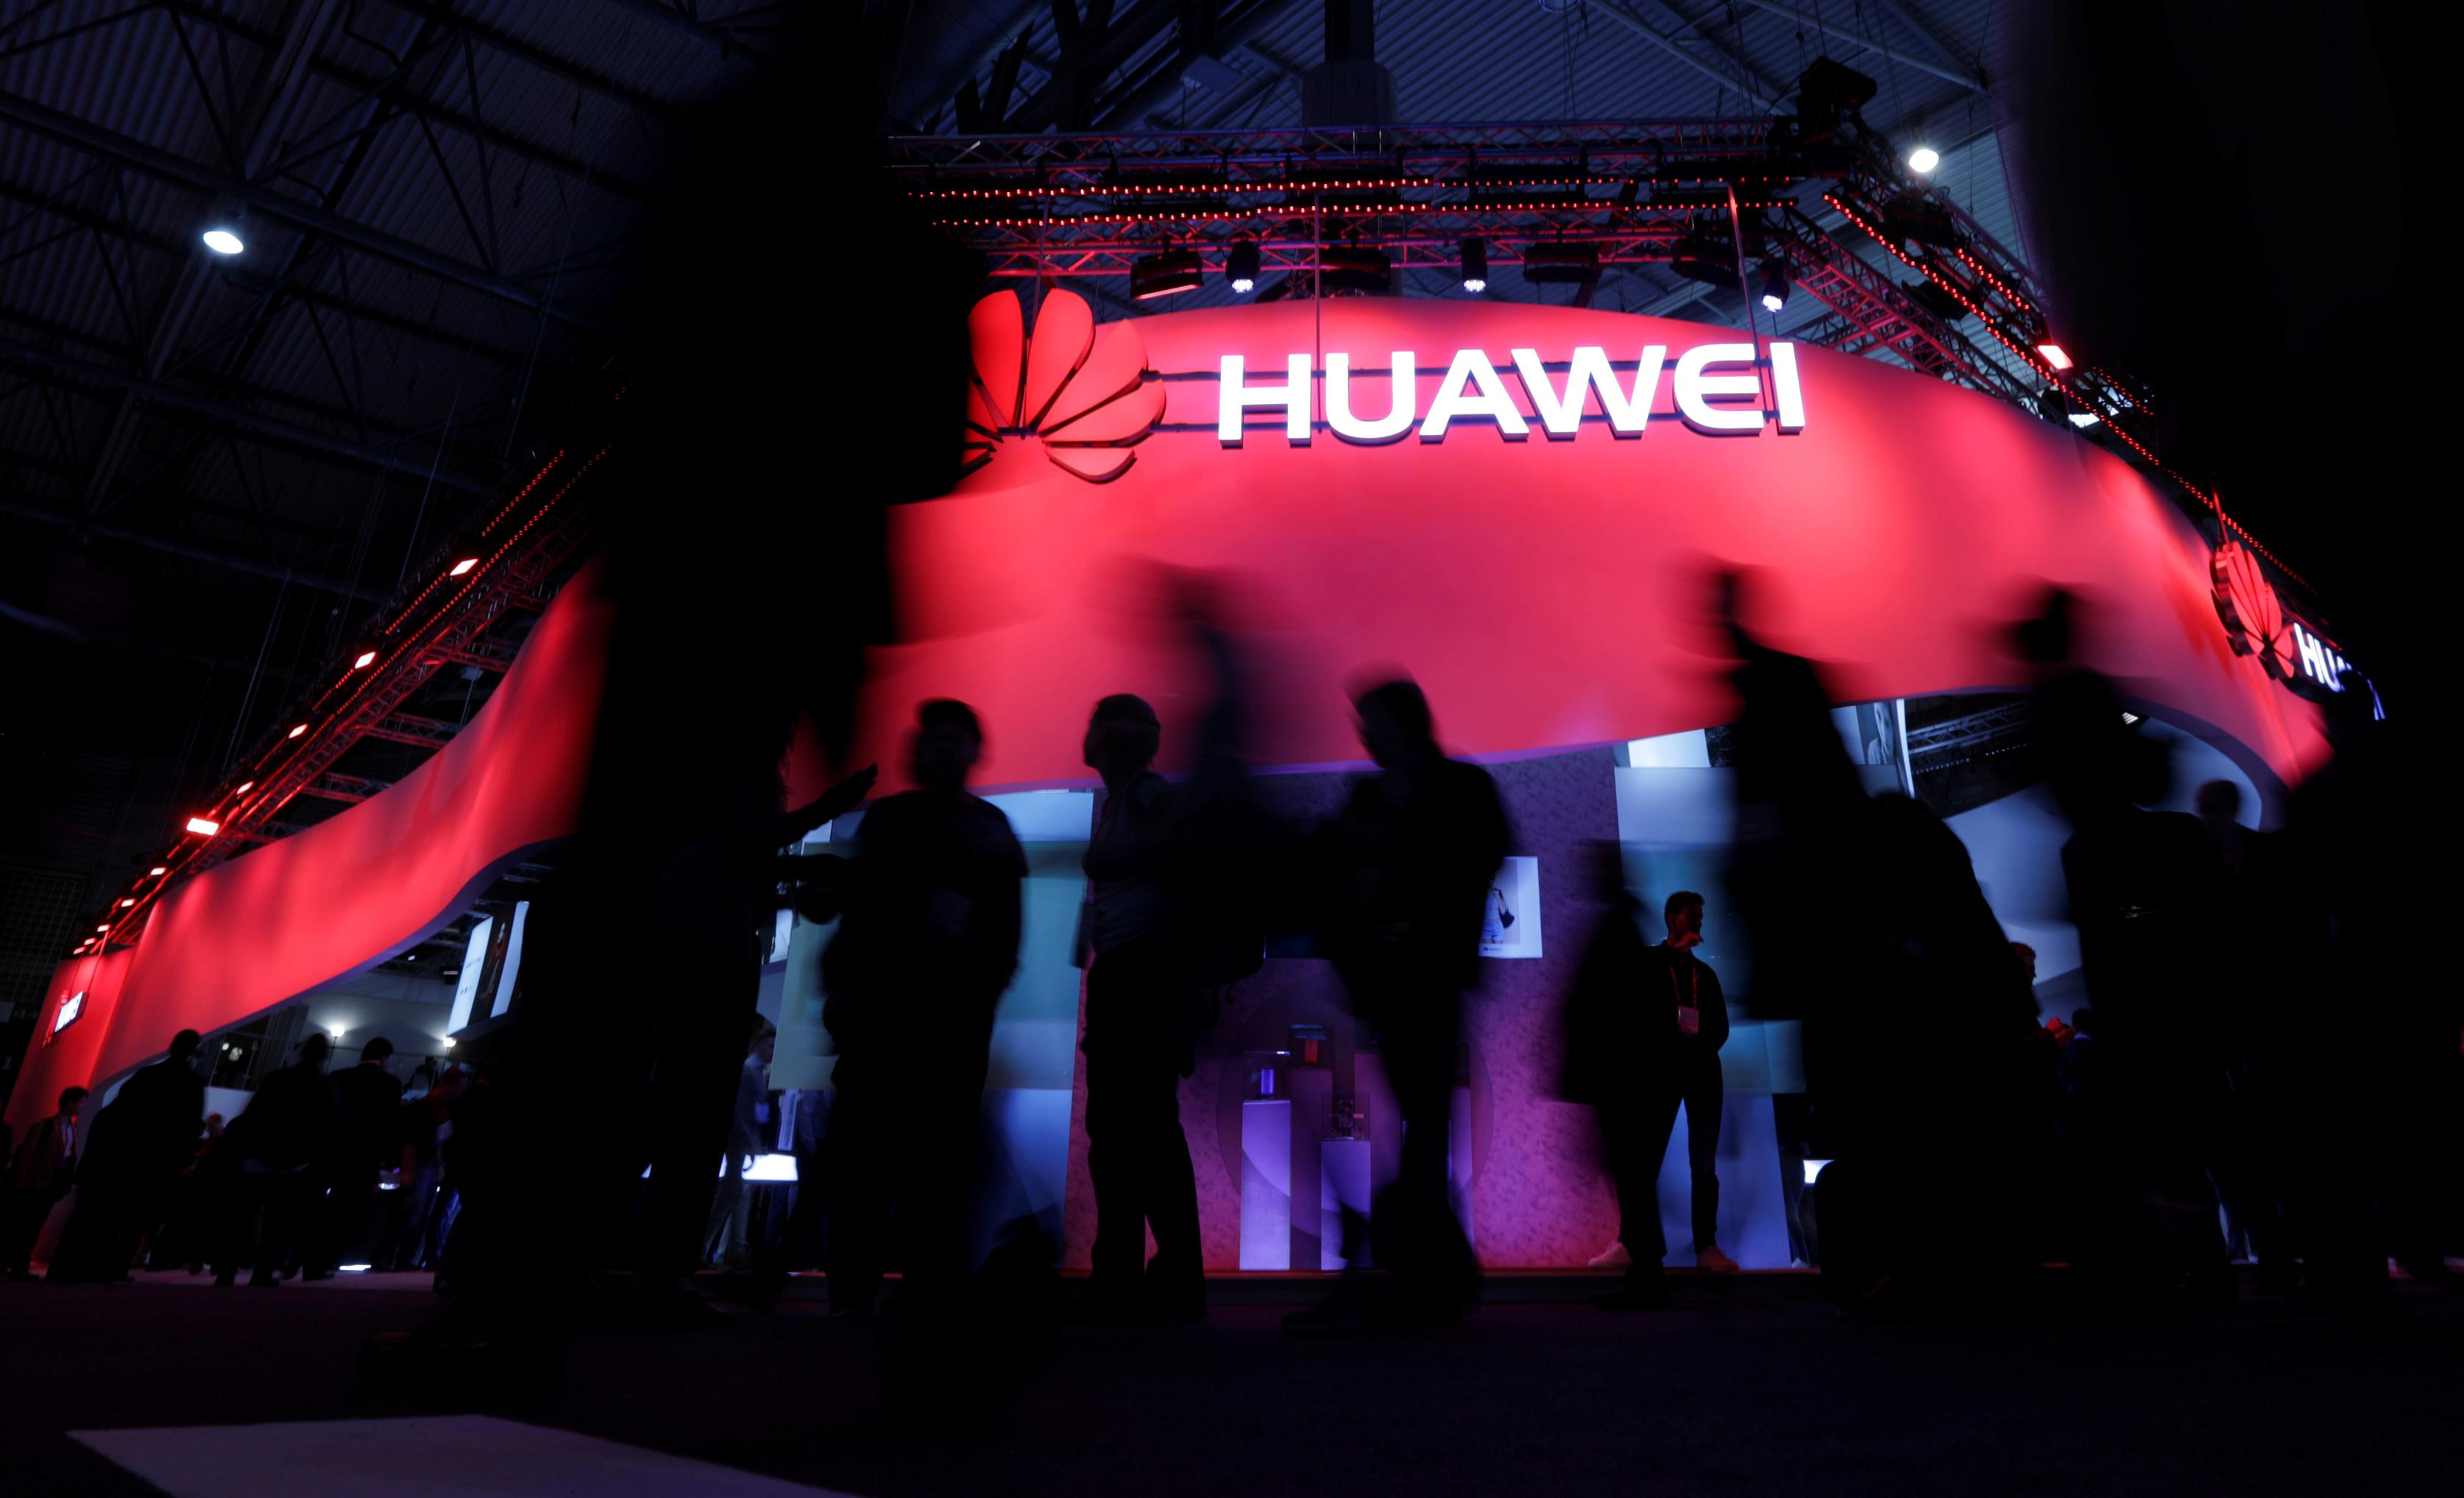 Huawei denies it poses security threat after EU warning